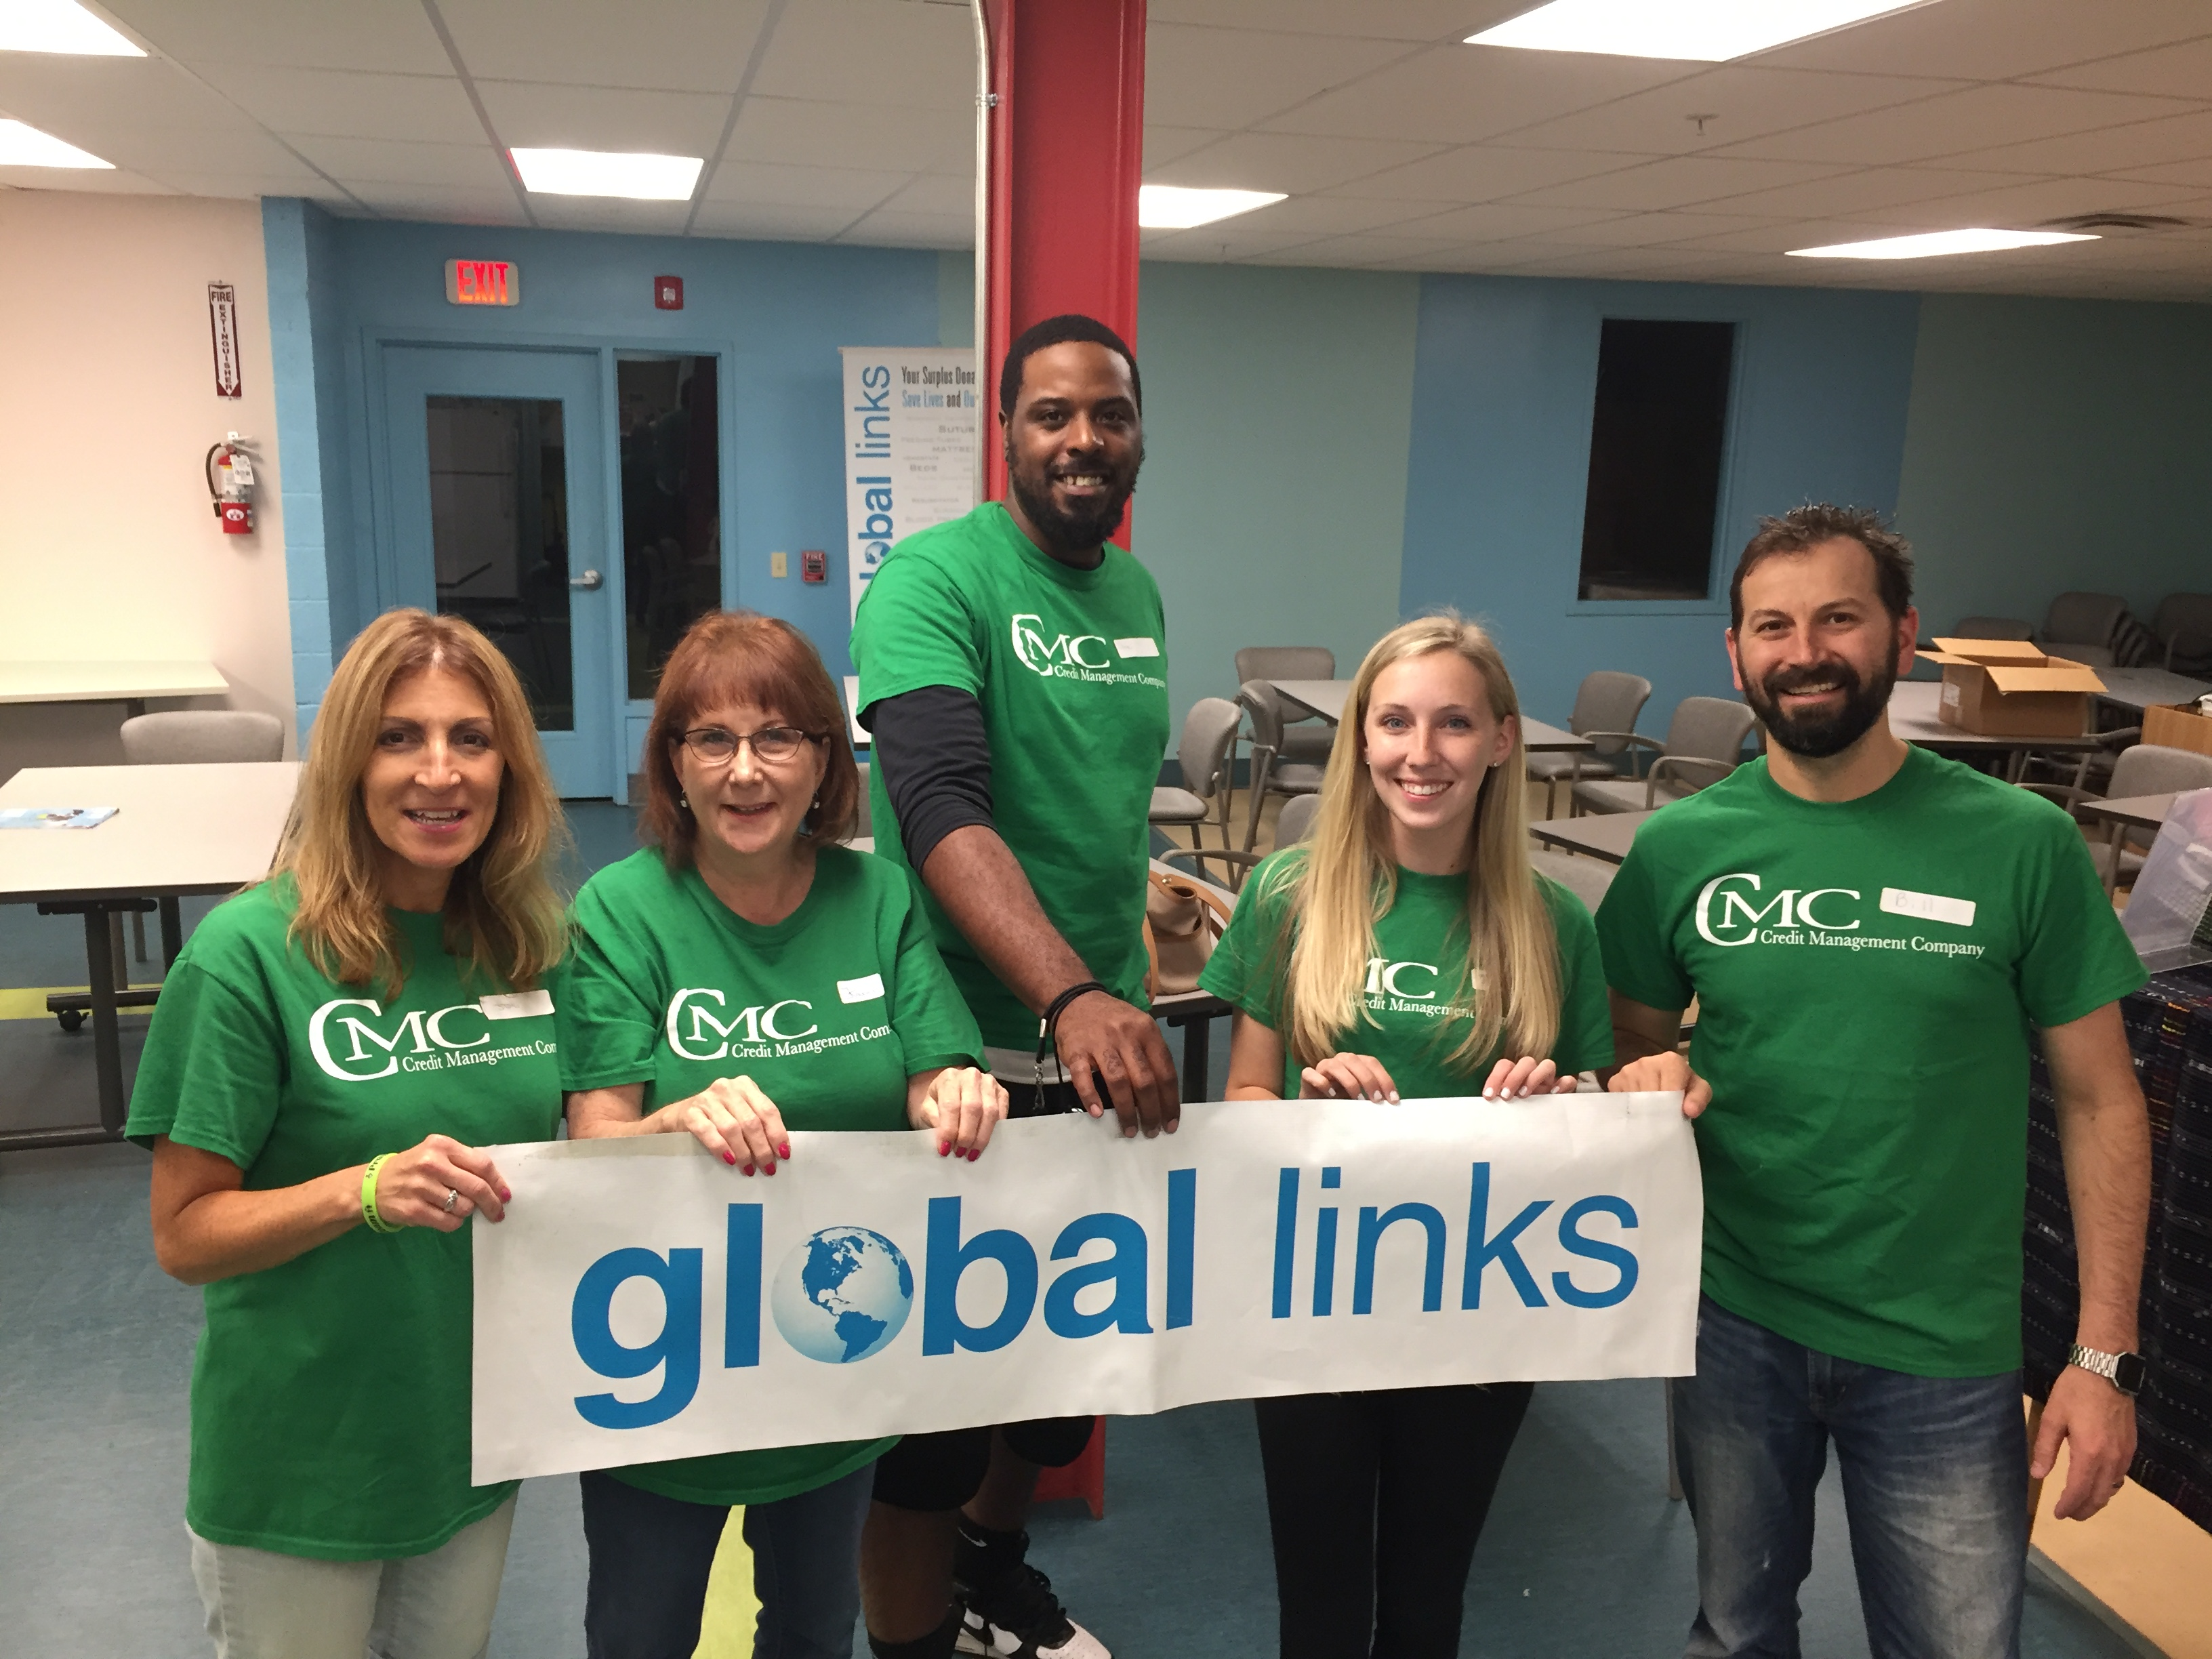 Global Links - logo